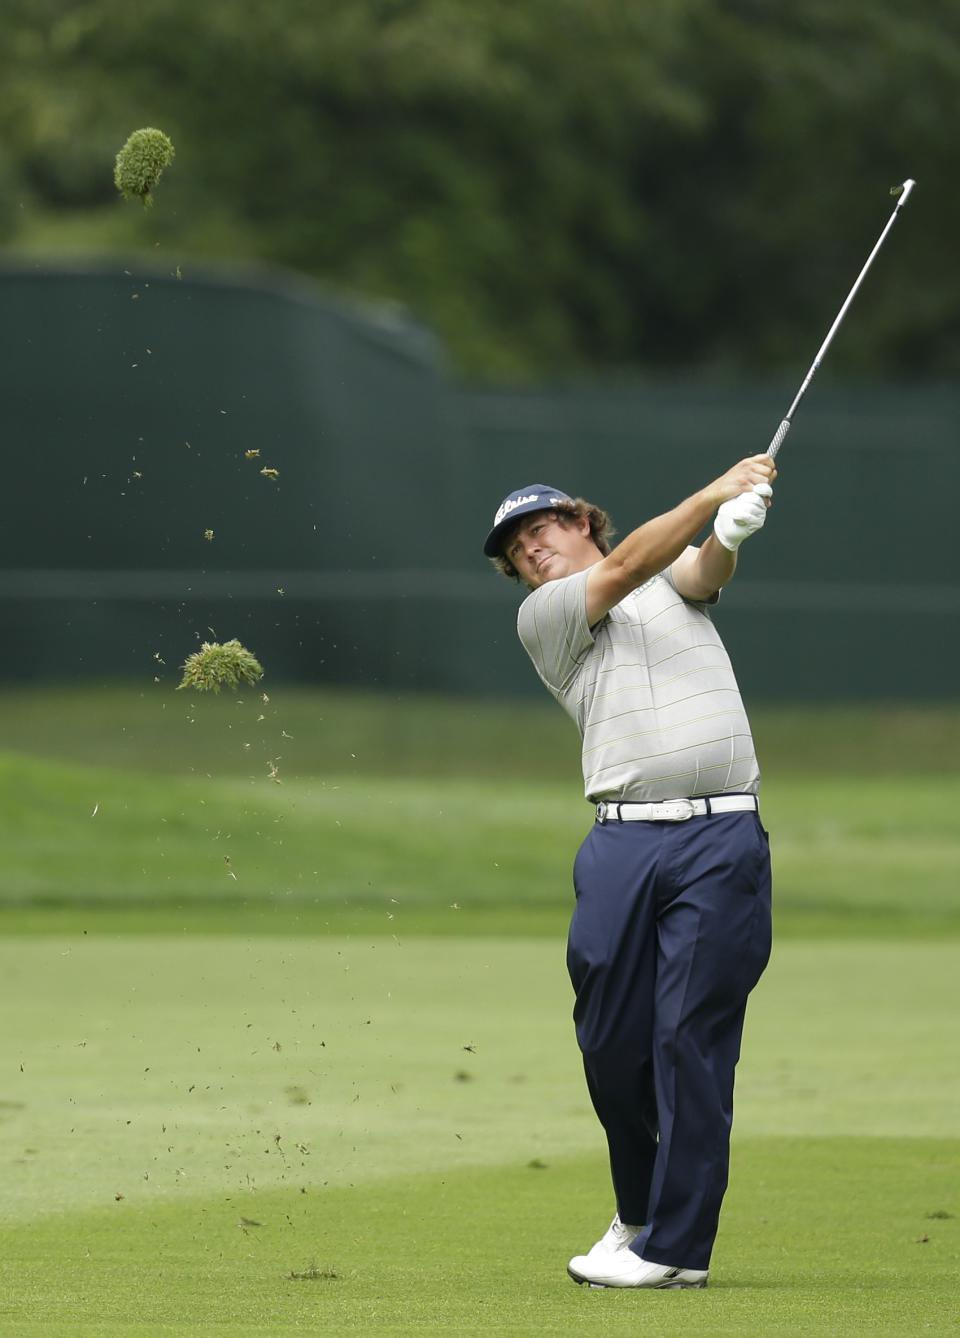 Jason Dufner hits from the fairway on the eighth hole during the second round of the PGA Championship golf tournament at Oak Hill Country Club, Friday, Aug. 9, 2013, in Pittsford, N.Y. (AP Photo/Charlie Neibergall)